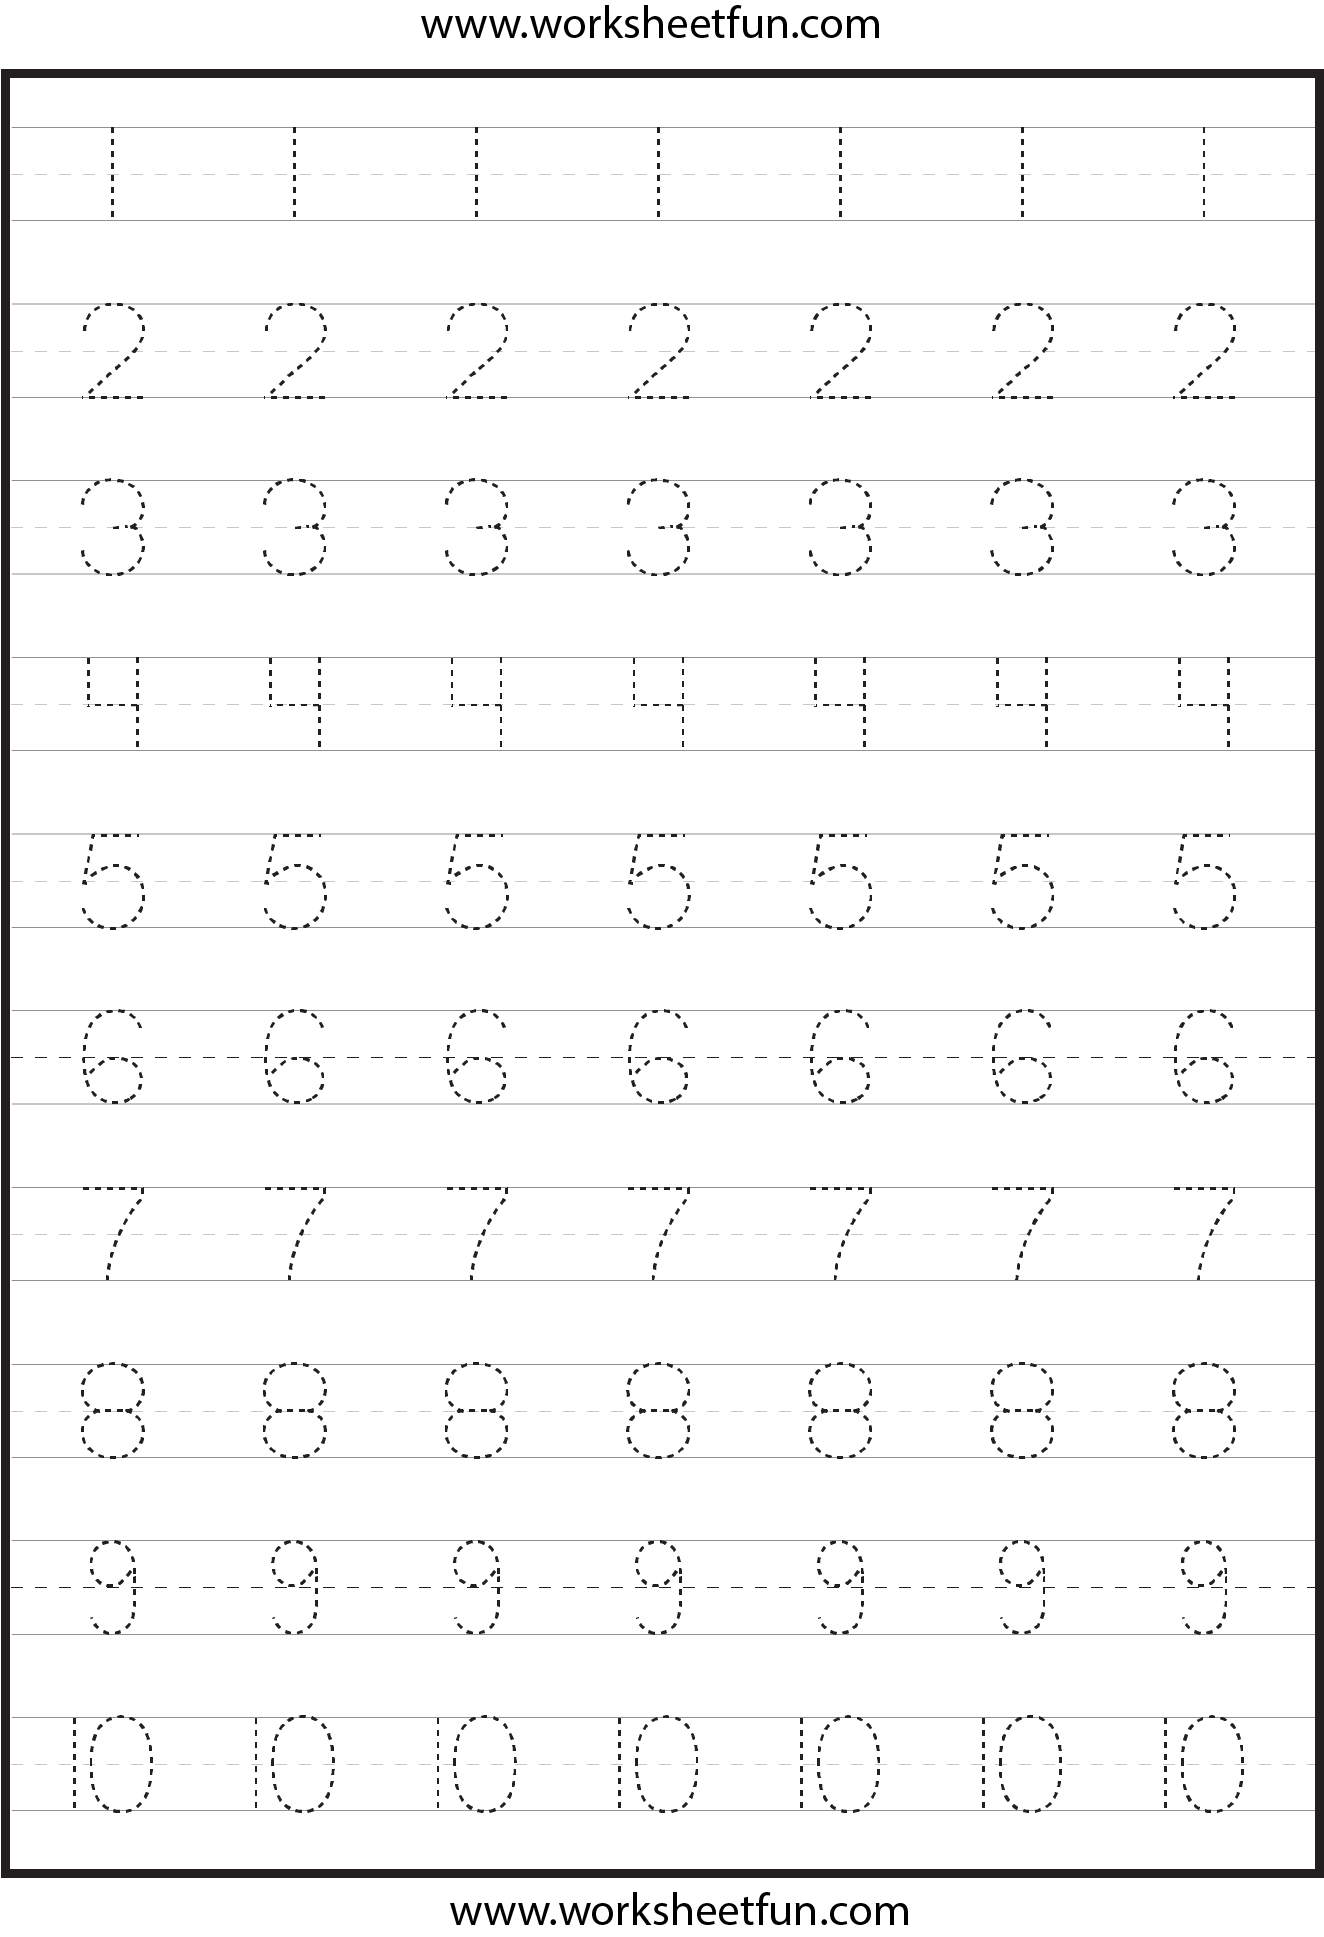 Number Tracing Worksheets For Kindergarten 1 10 Ten